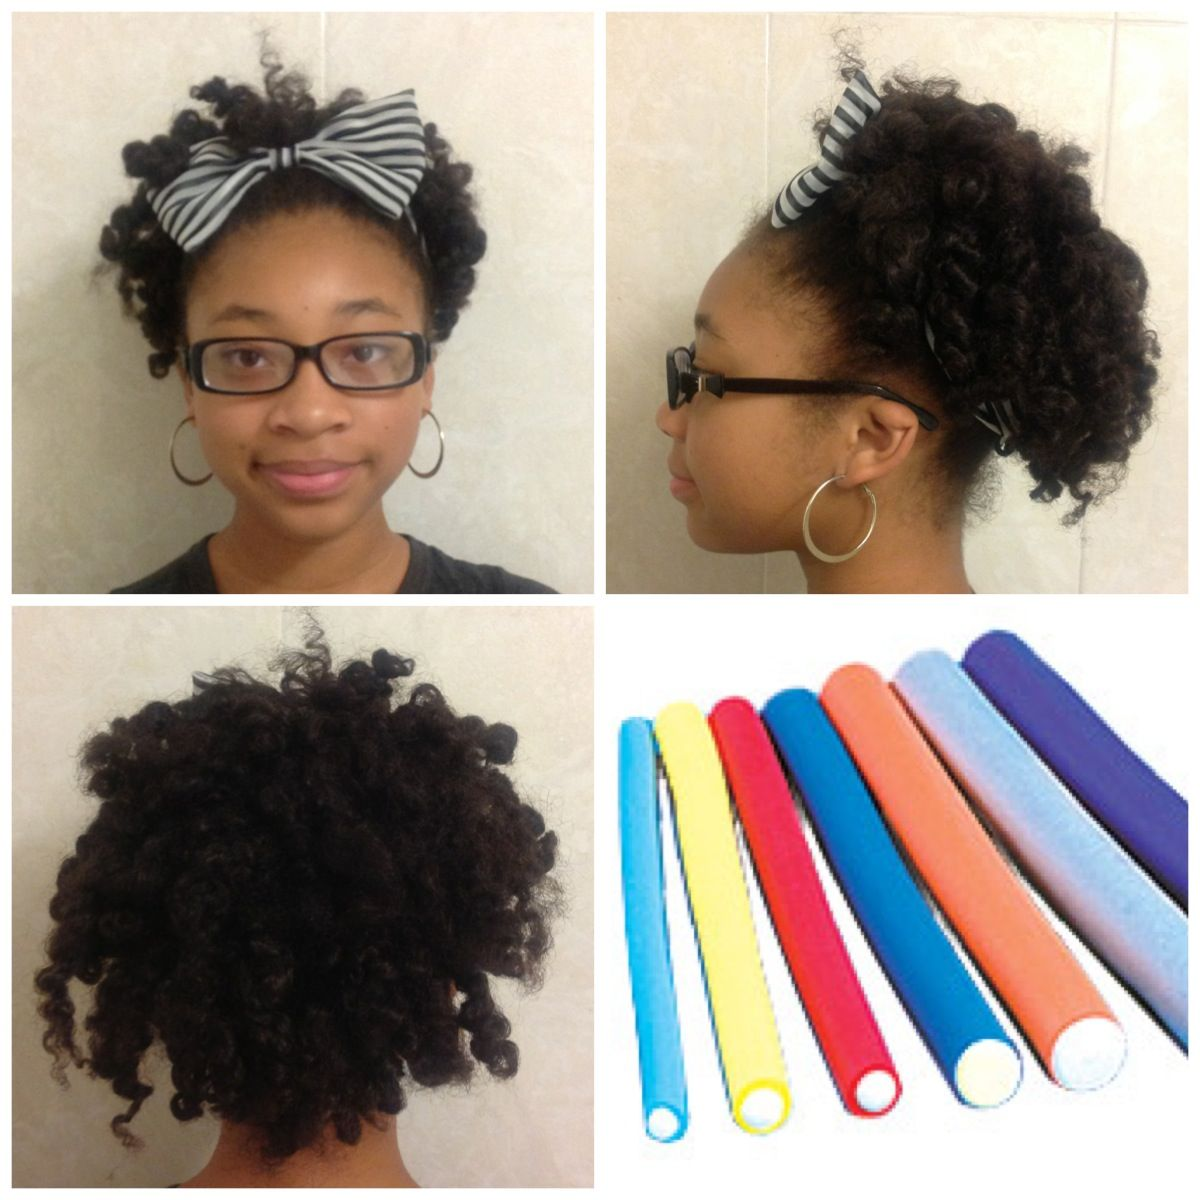 natural hair style: flexi rod w/a headband | natural hair journey